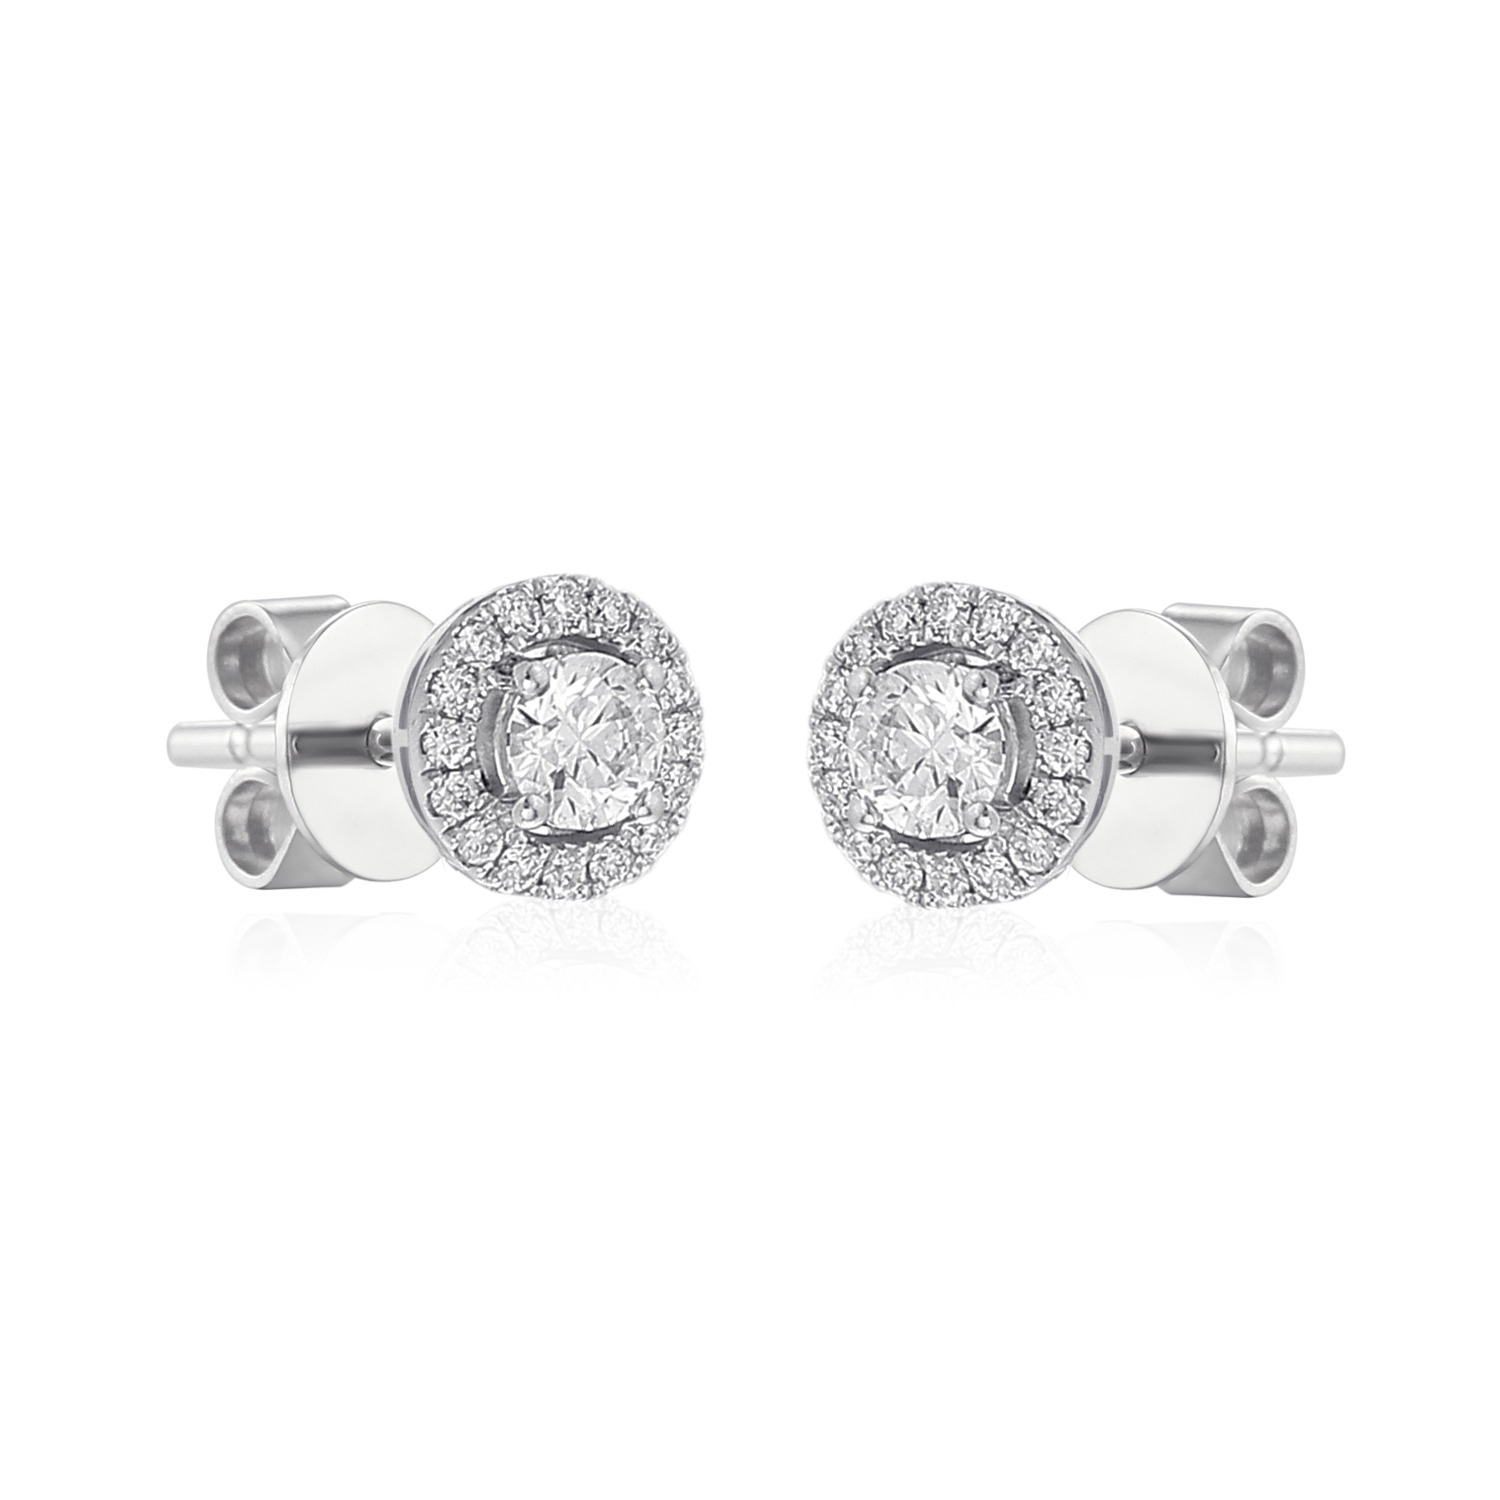 glittering halo earrings feature round diamonds